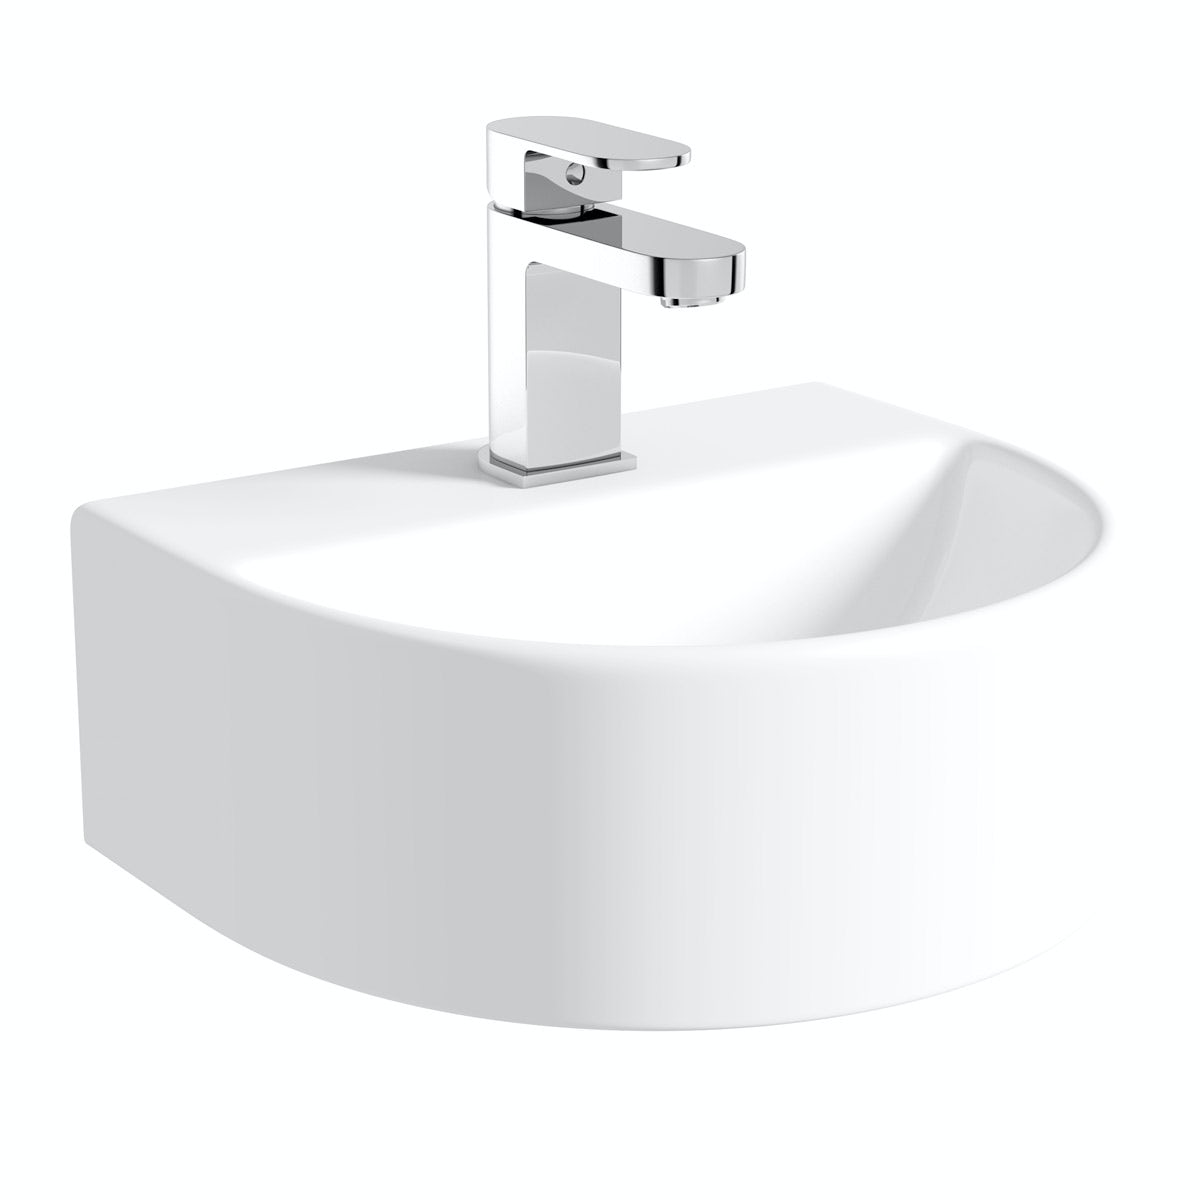 Orchard Pichola 1 tap hole wall hung basin 310mm